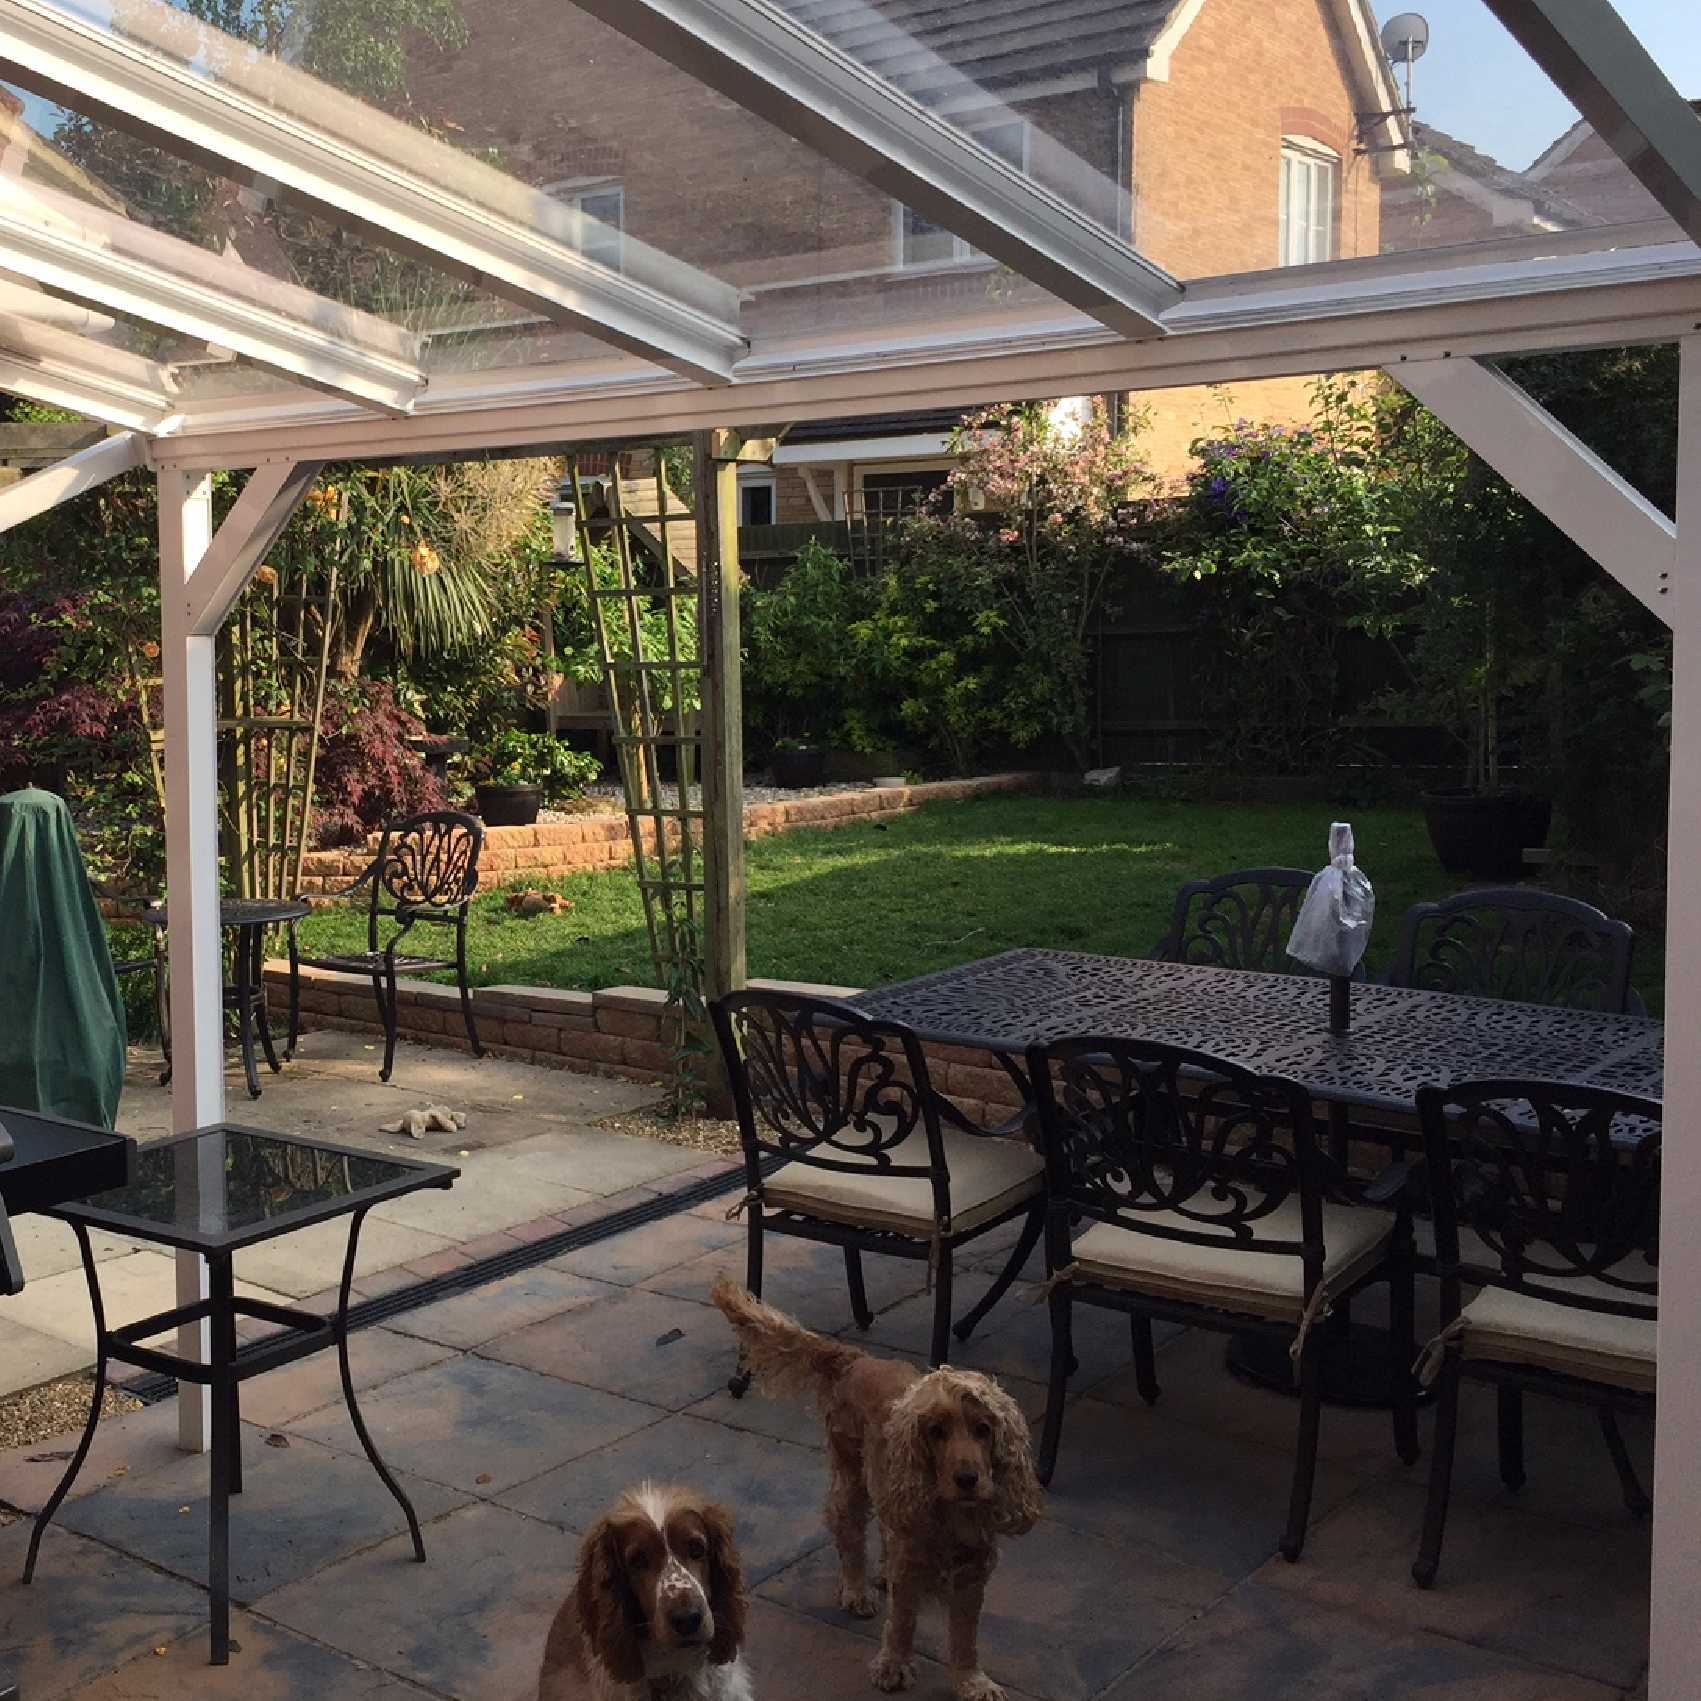 Affordable Omega Smart White Lean-To Canopy UNGLAZED for 6mm Glazing - 4.2m (W) x 2.0m (P), (3) Supporting Posts